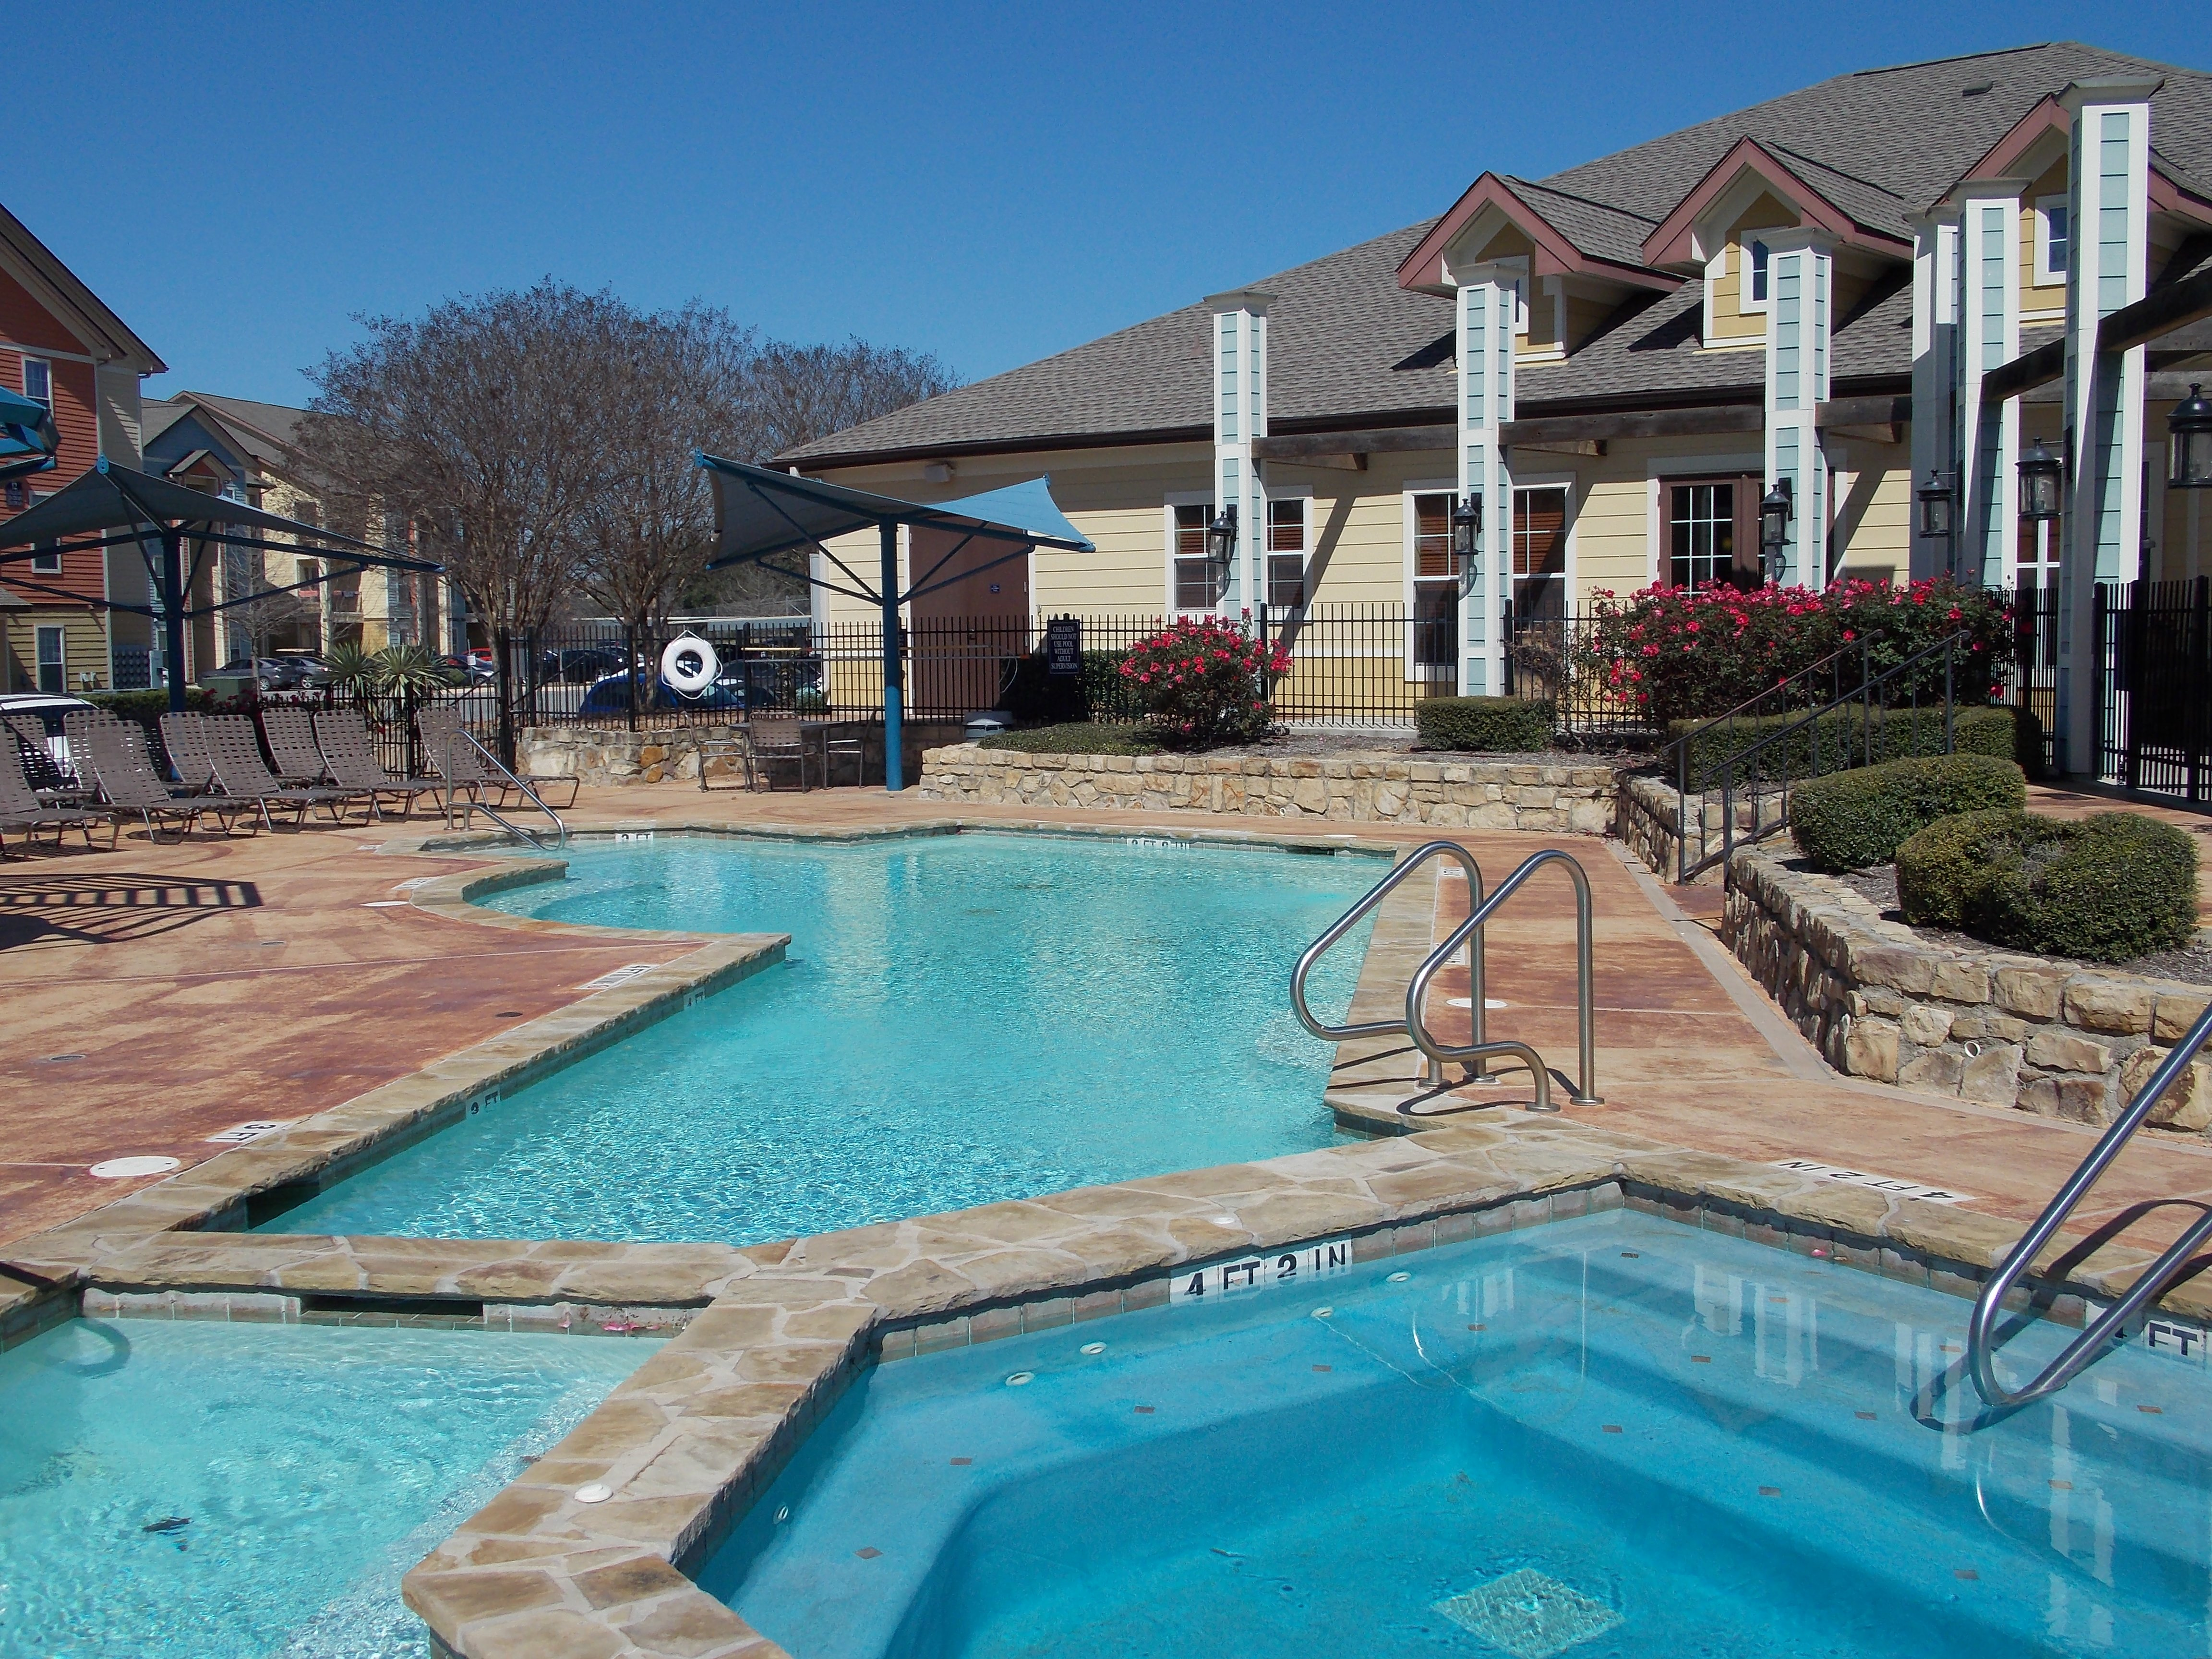 Hill Country Place Apartments image 7